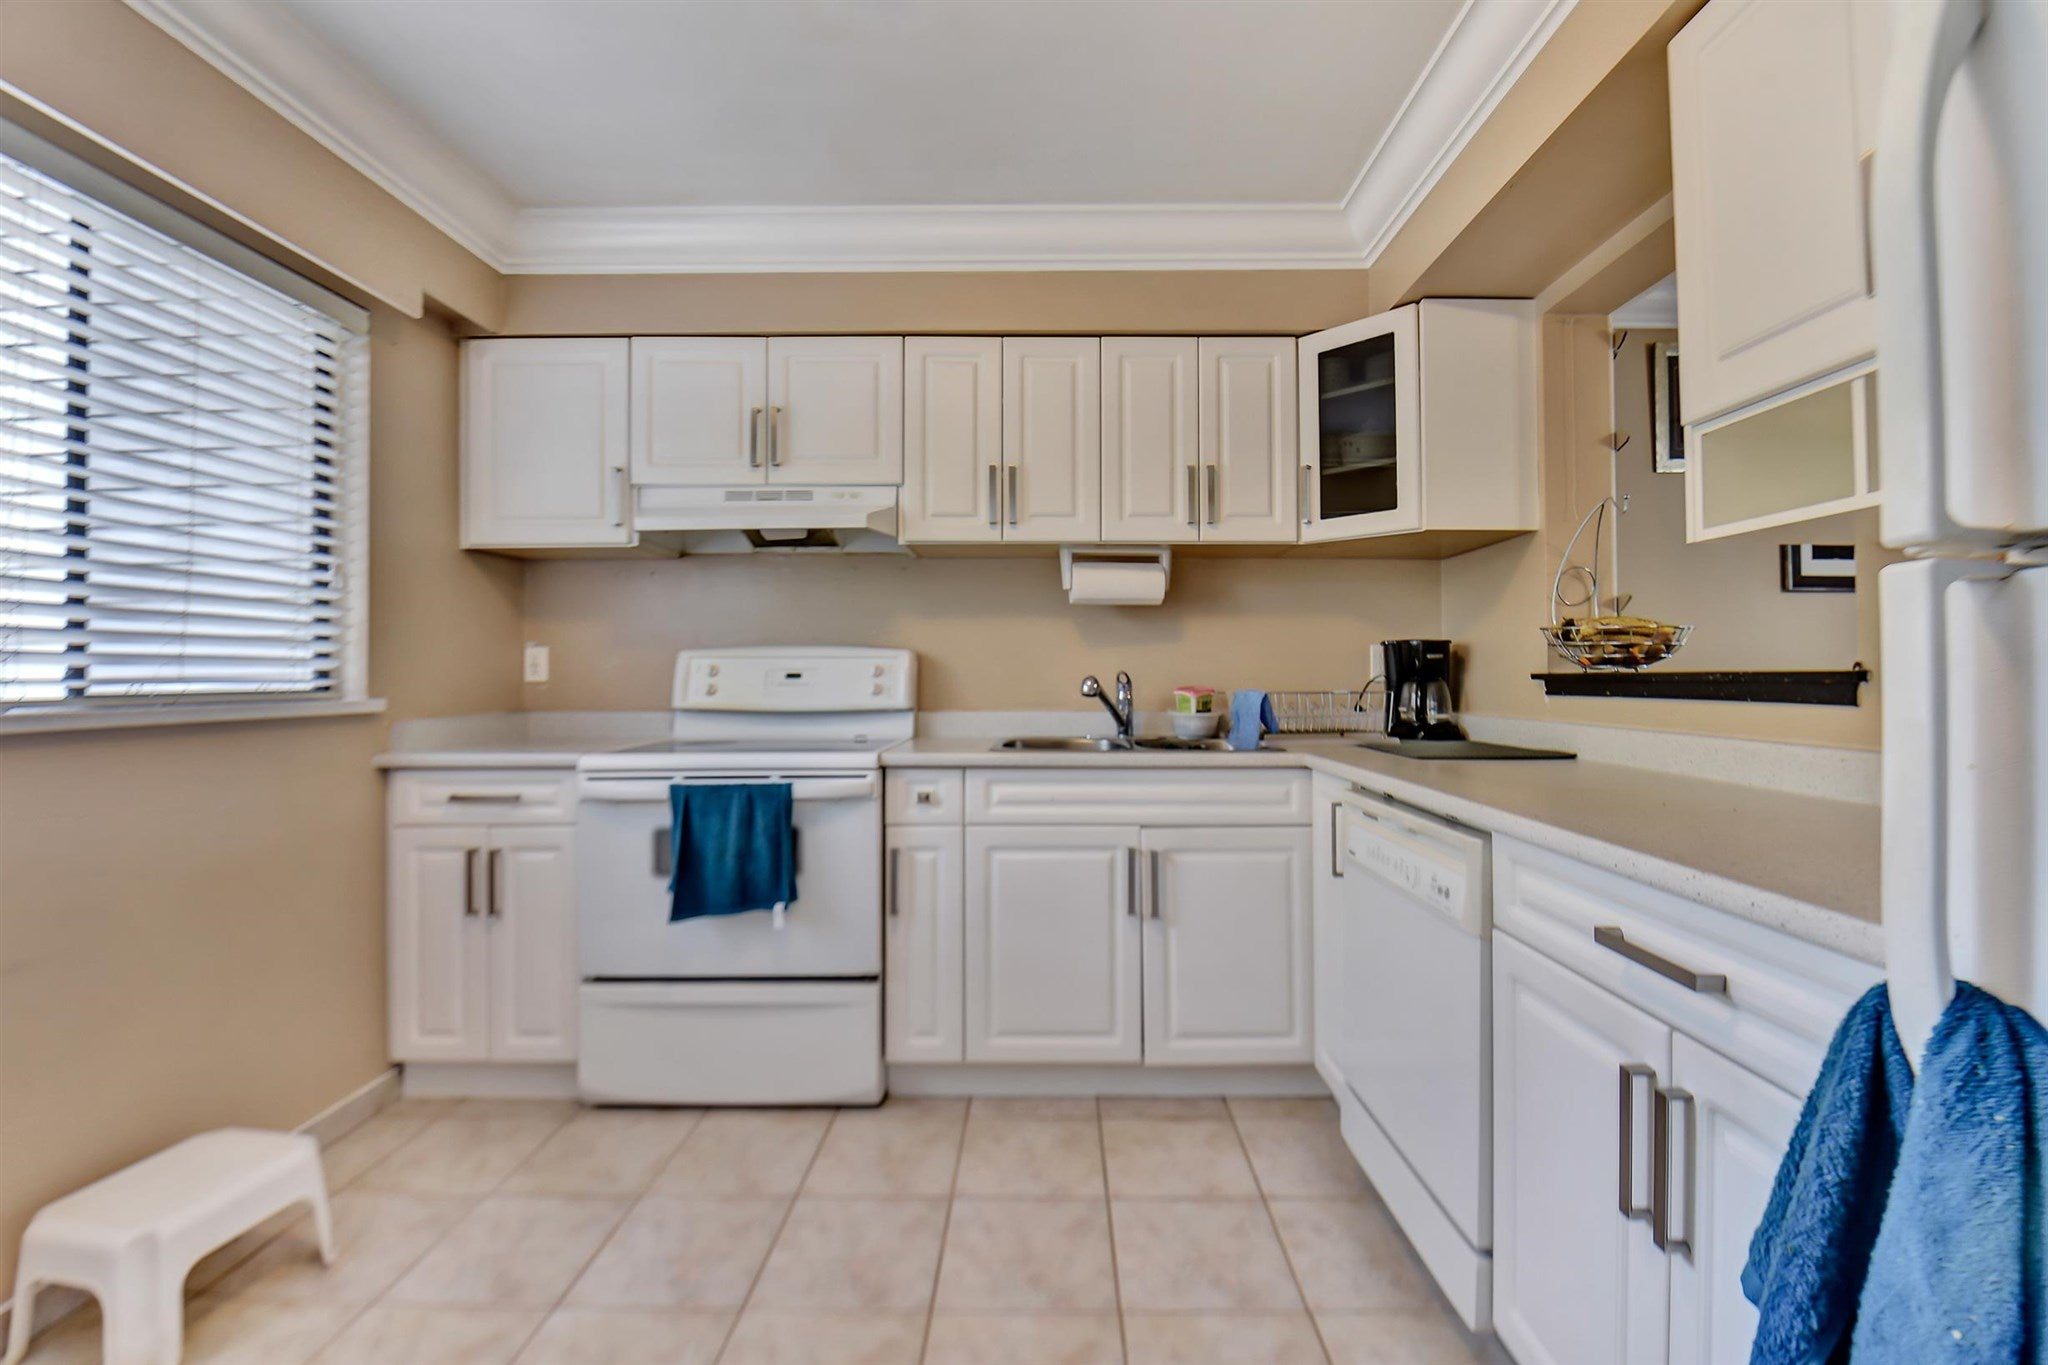 31 12045 93A AVENUE - Queen Mary Park Surrey Townhouse for sale, 4 Bedrooms (R2603608) - #4